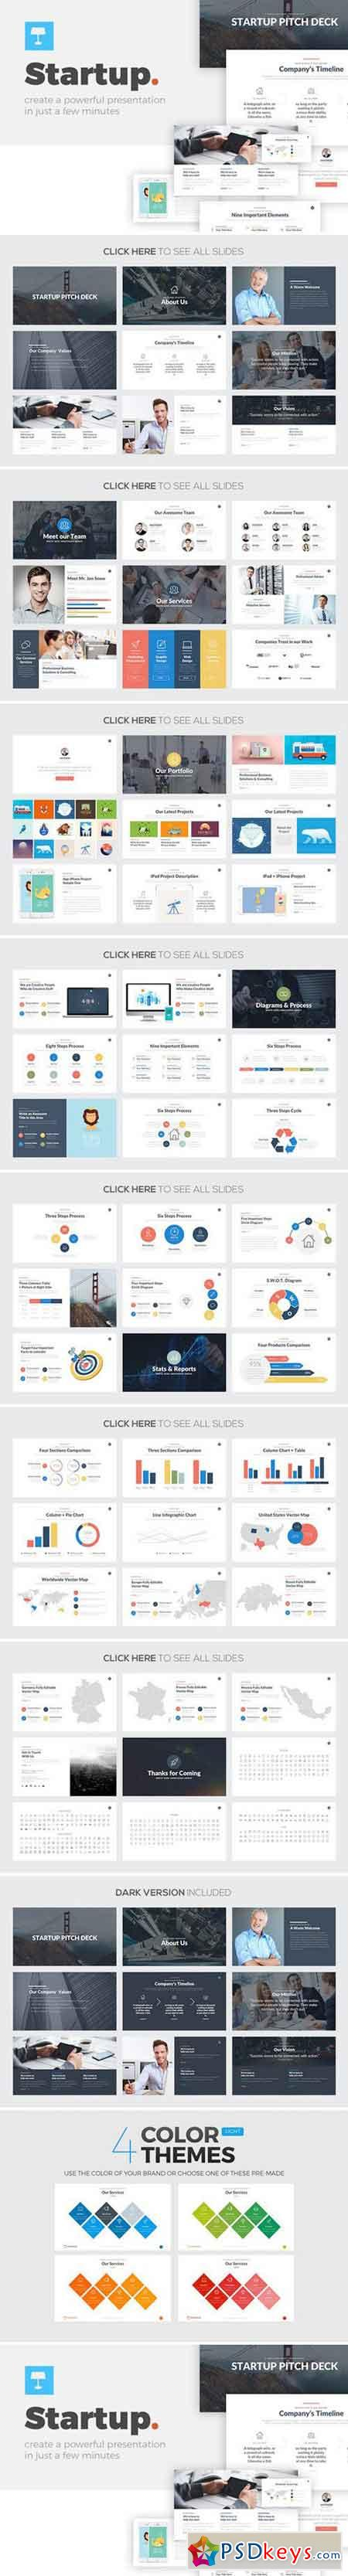 Startup Keynote Template 776964